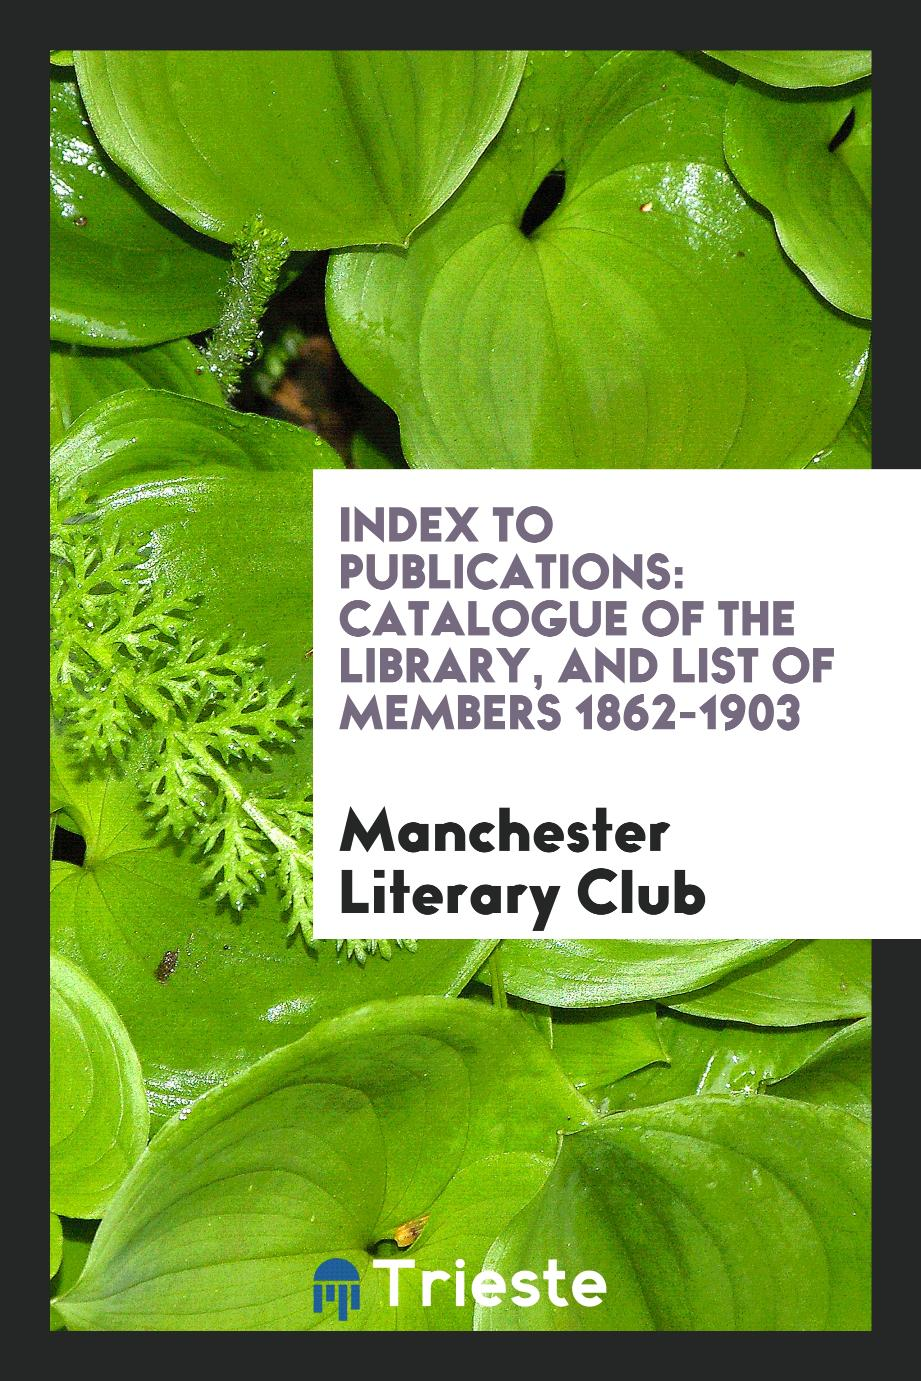 Index to Publications: Catalogue of the Library, and List of Members 1862-1903